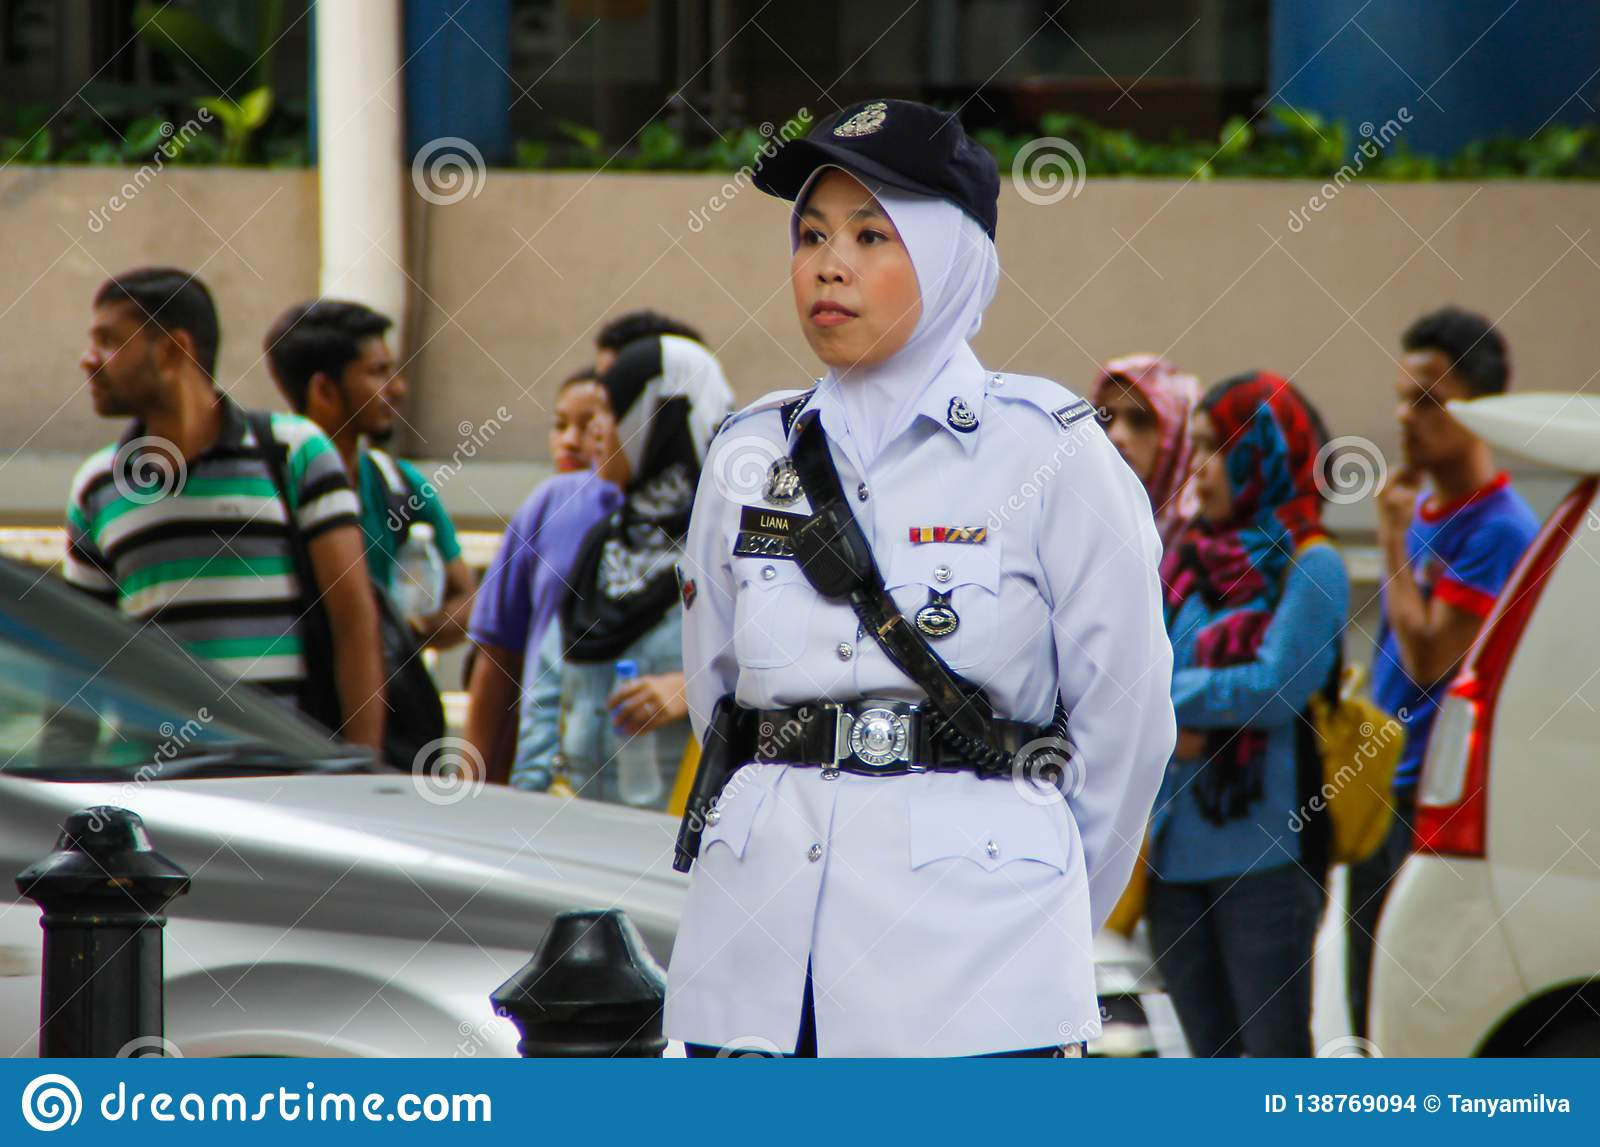 Asian police woman stands along the road in a white uniform, cap and hijab